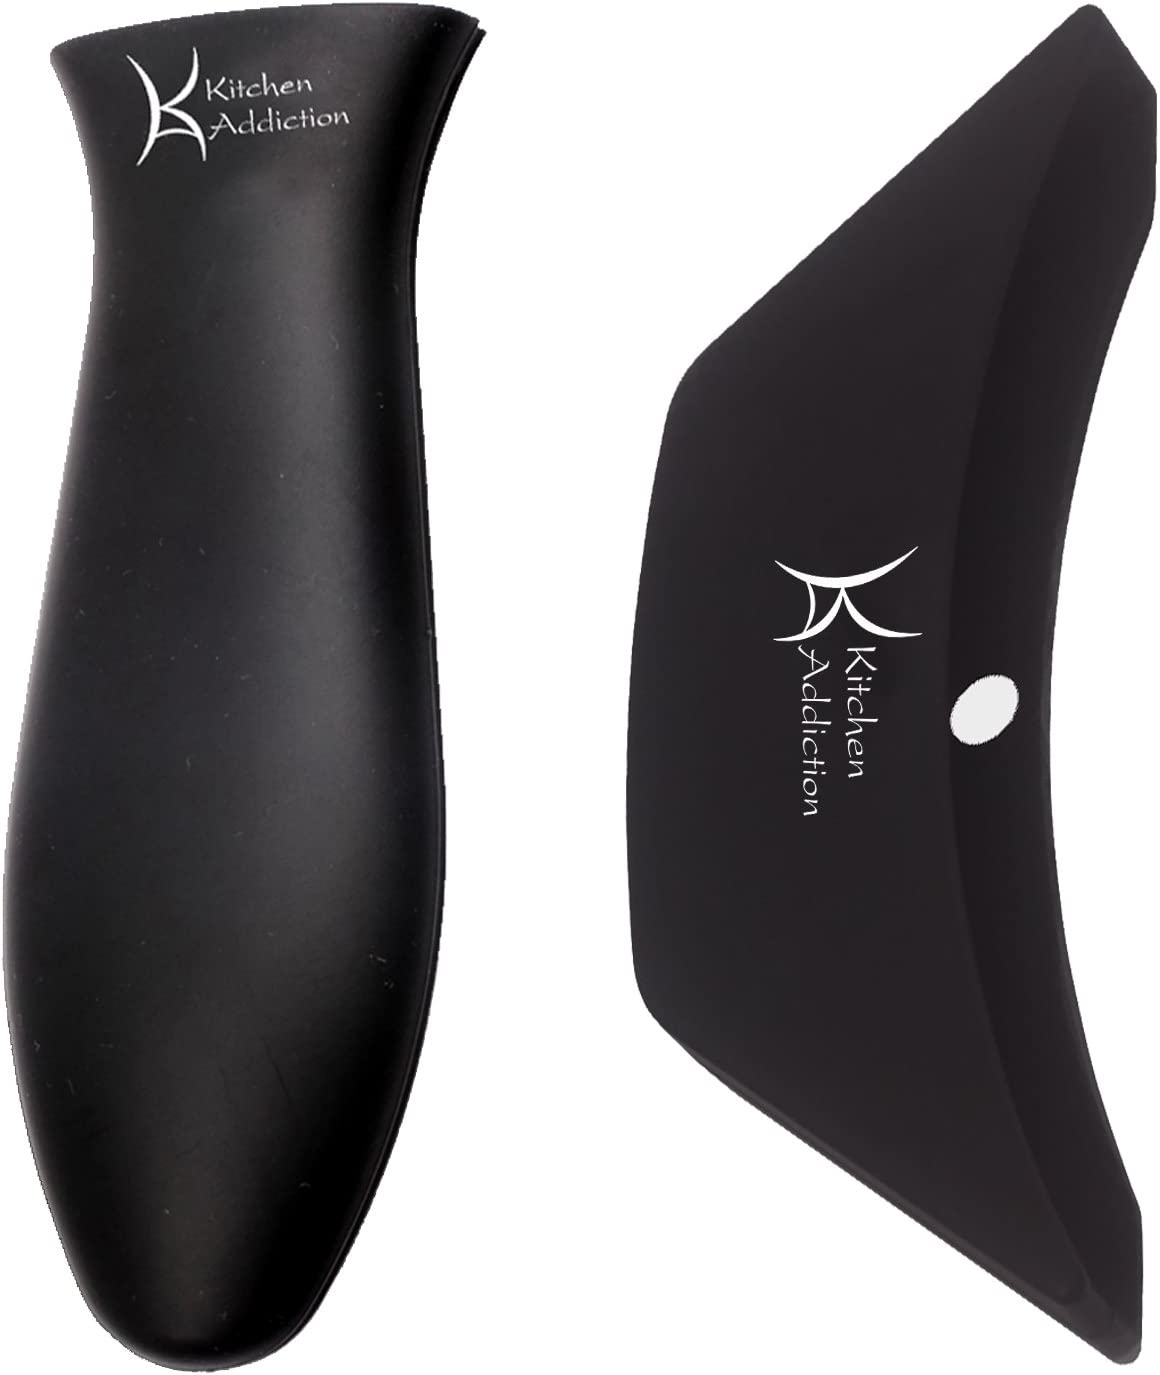 Combo Pack - Silicone Handle Holder Sleeve plus Silicone Assist Handle (Black)